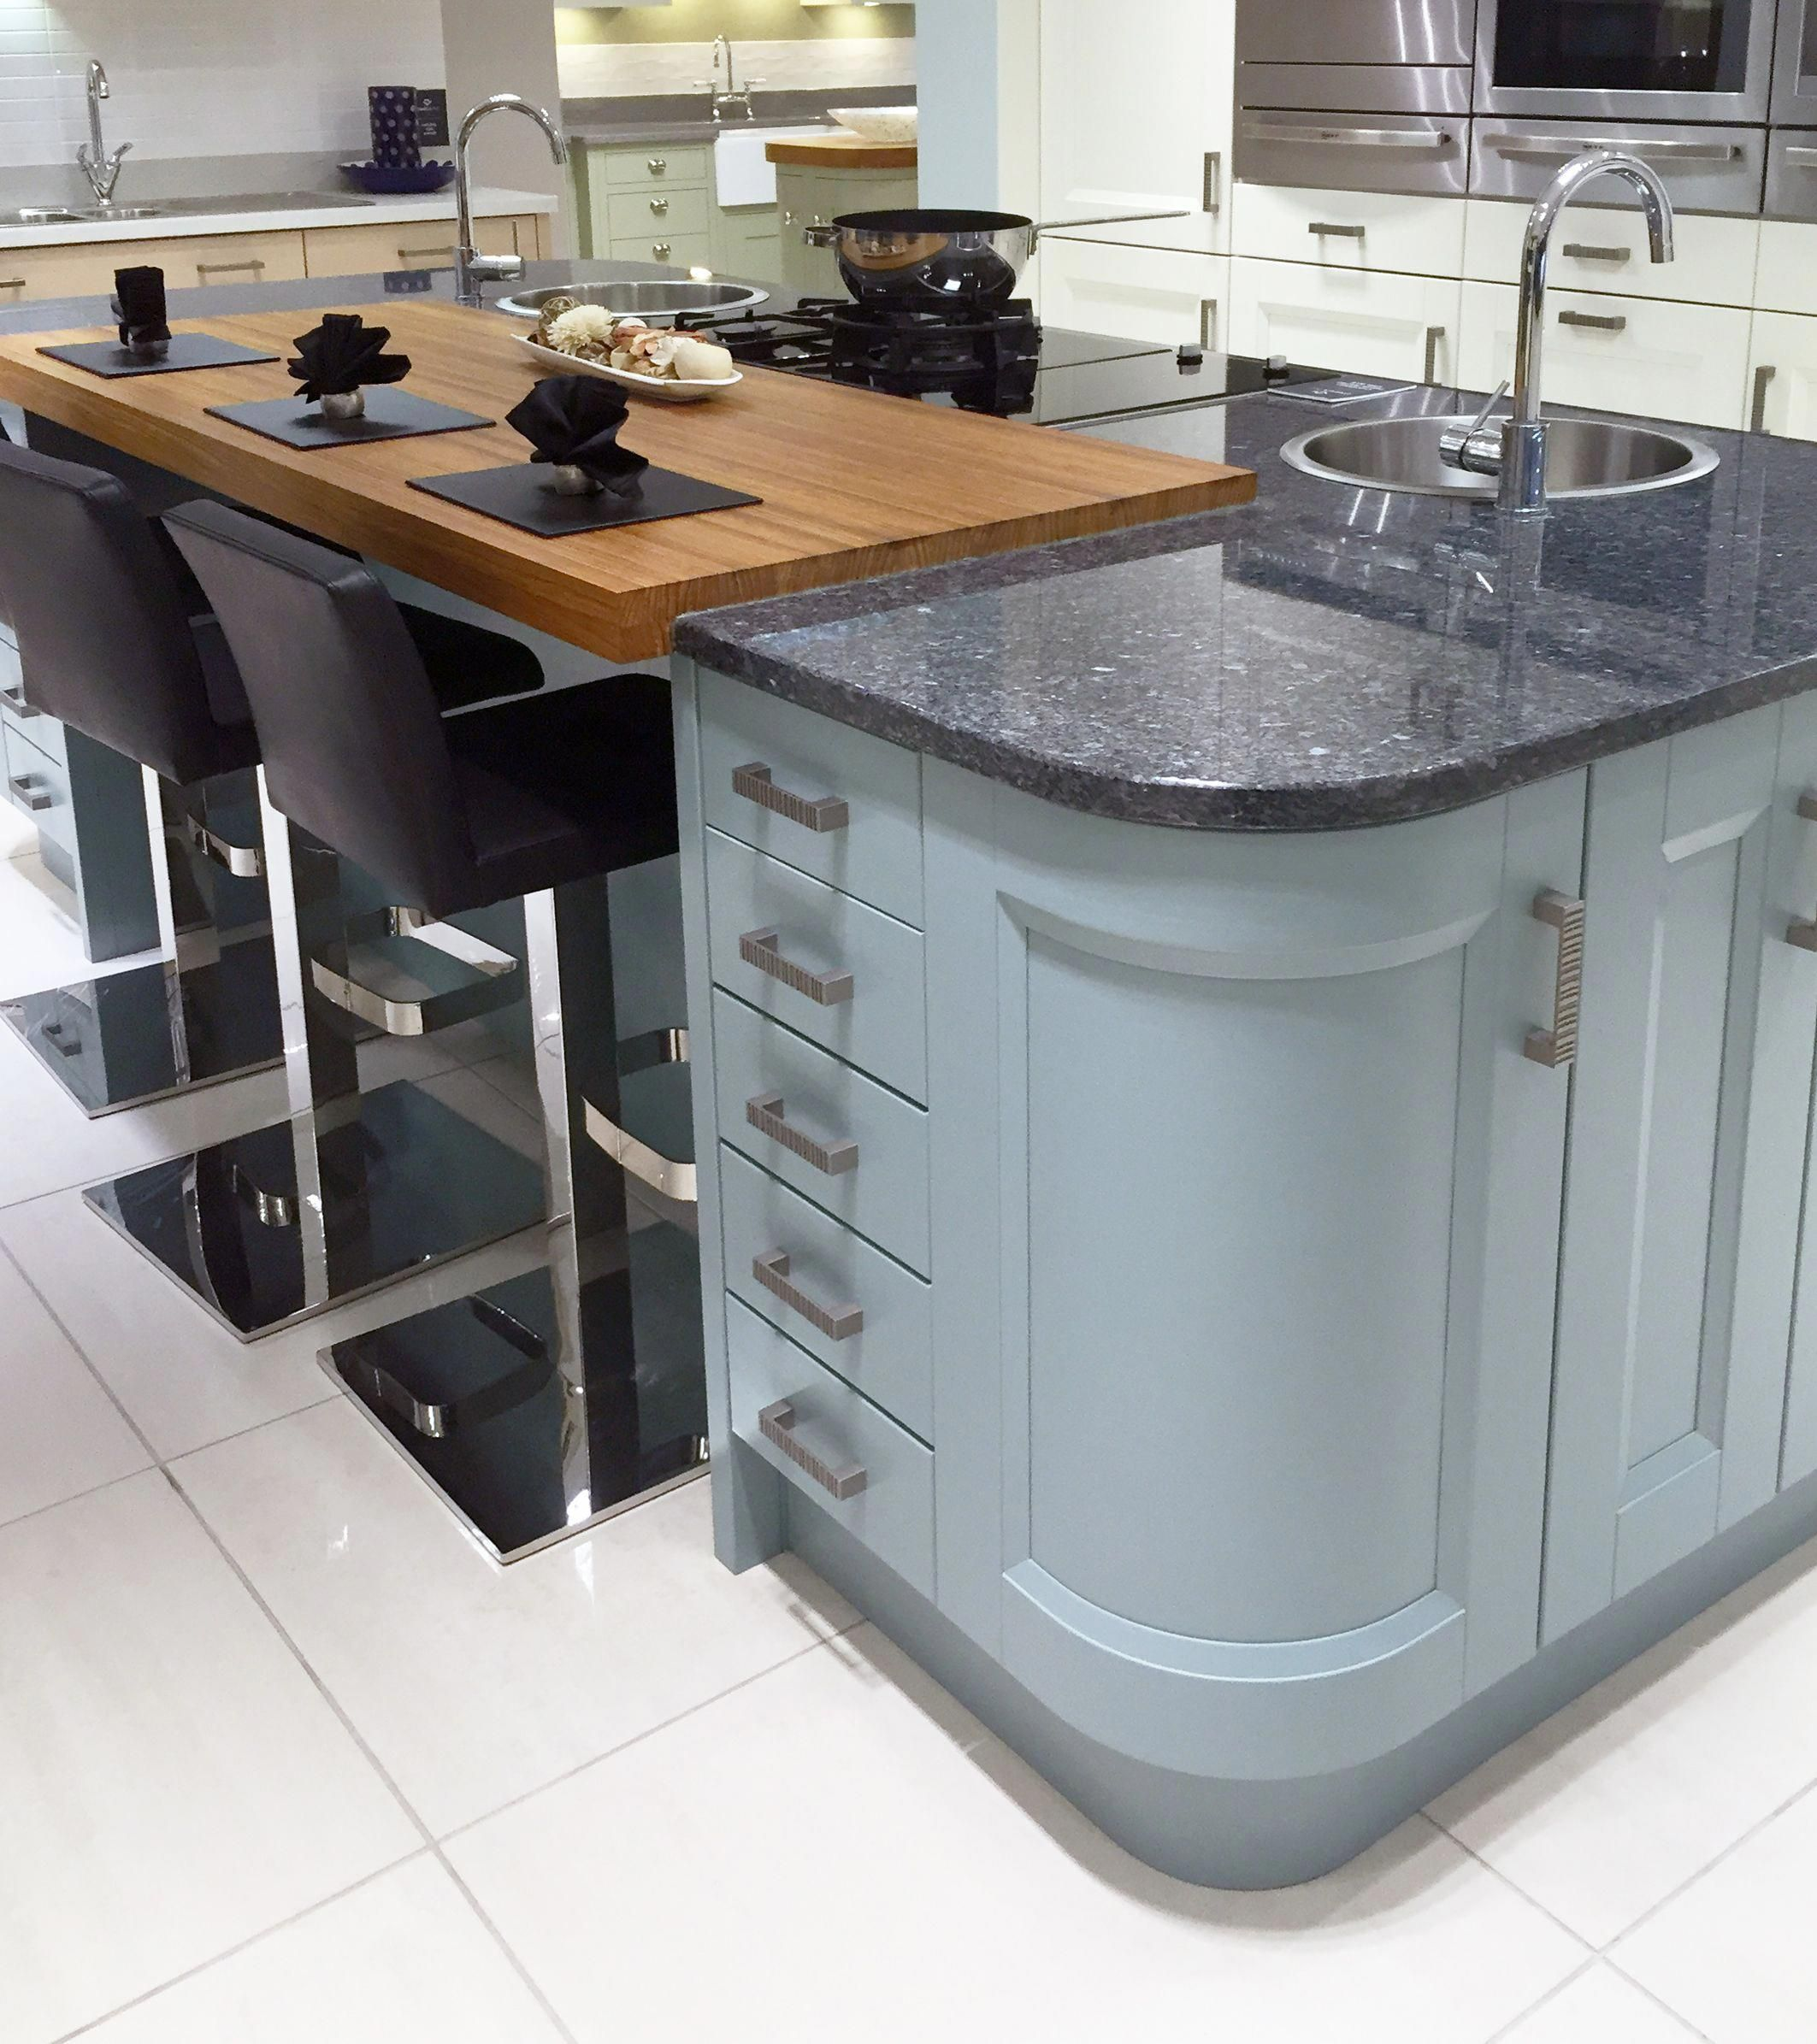 Contemporary Kitchen Island Design In Blue With Curved Units